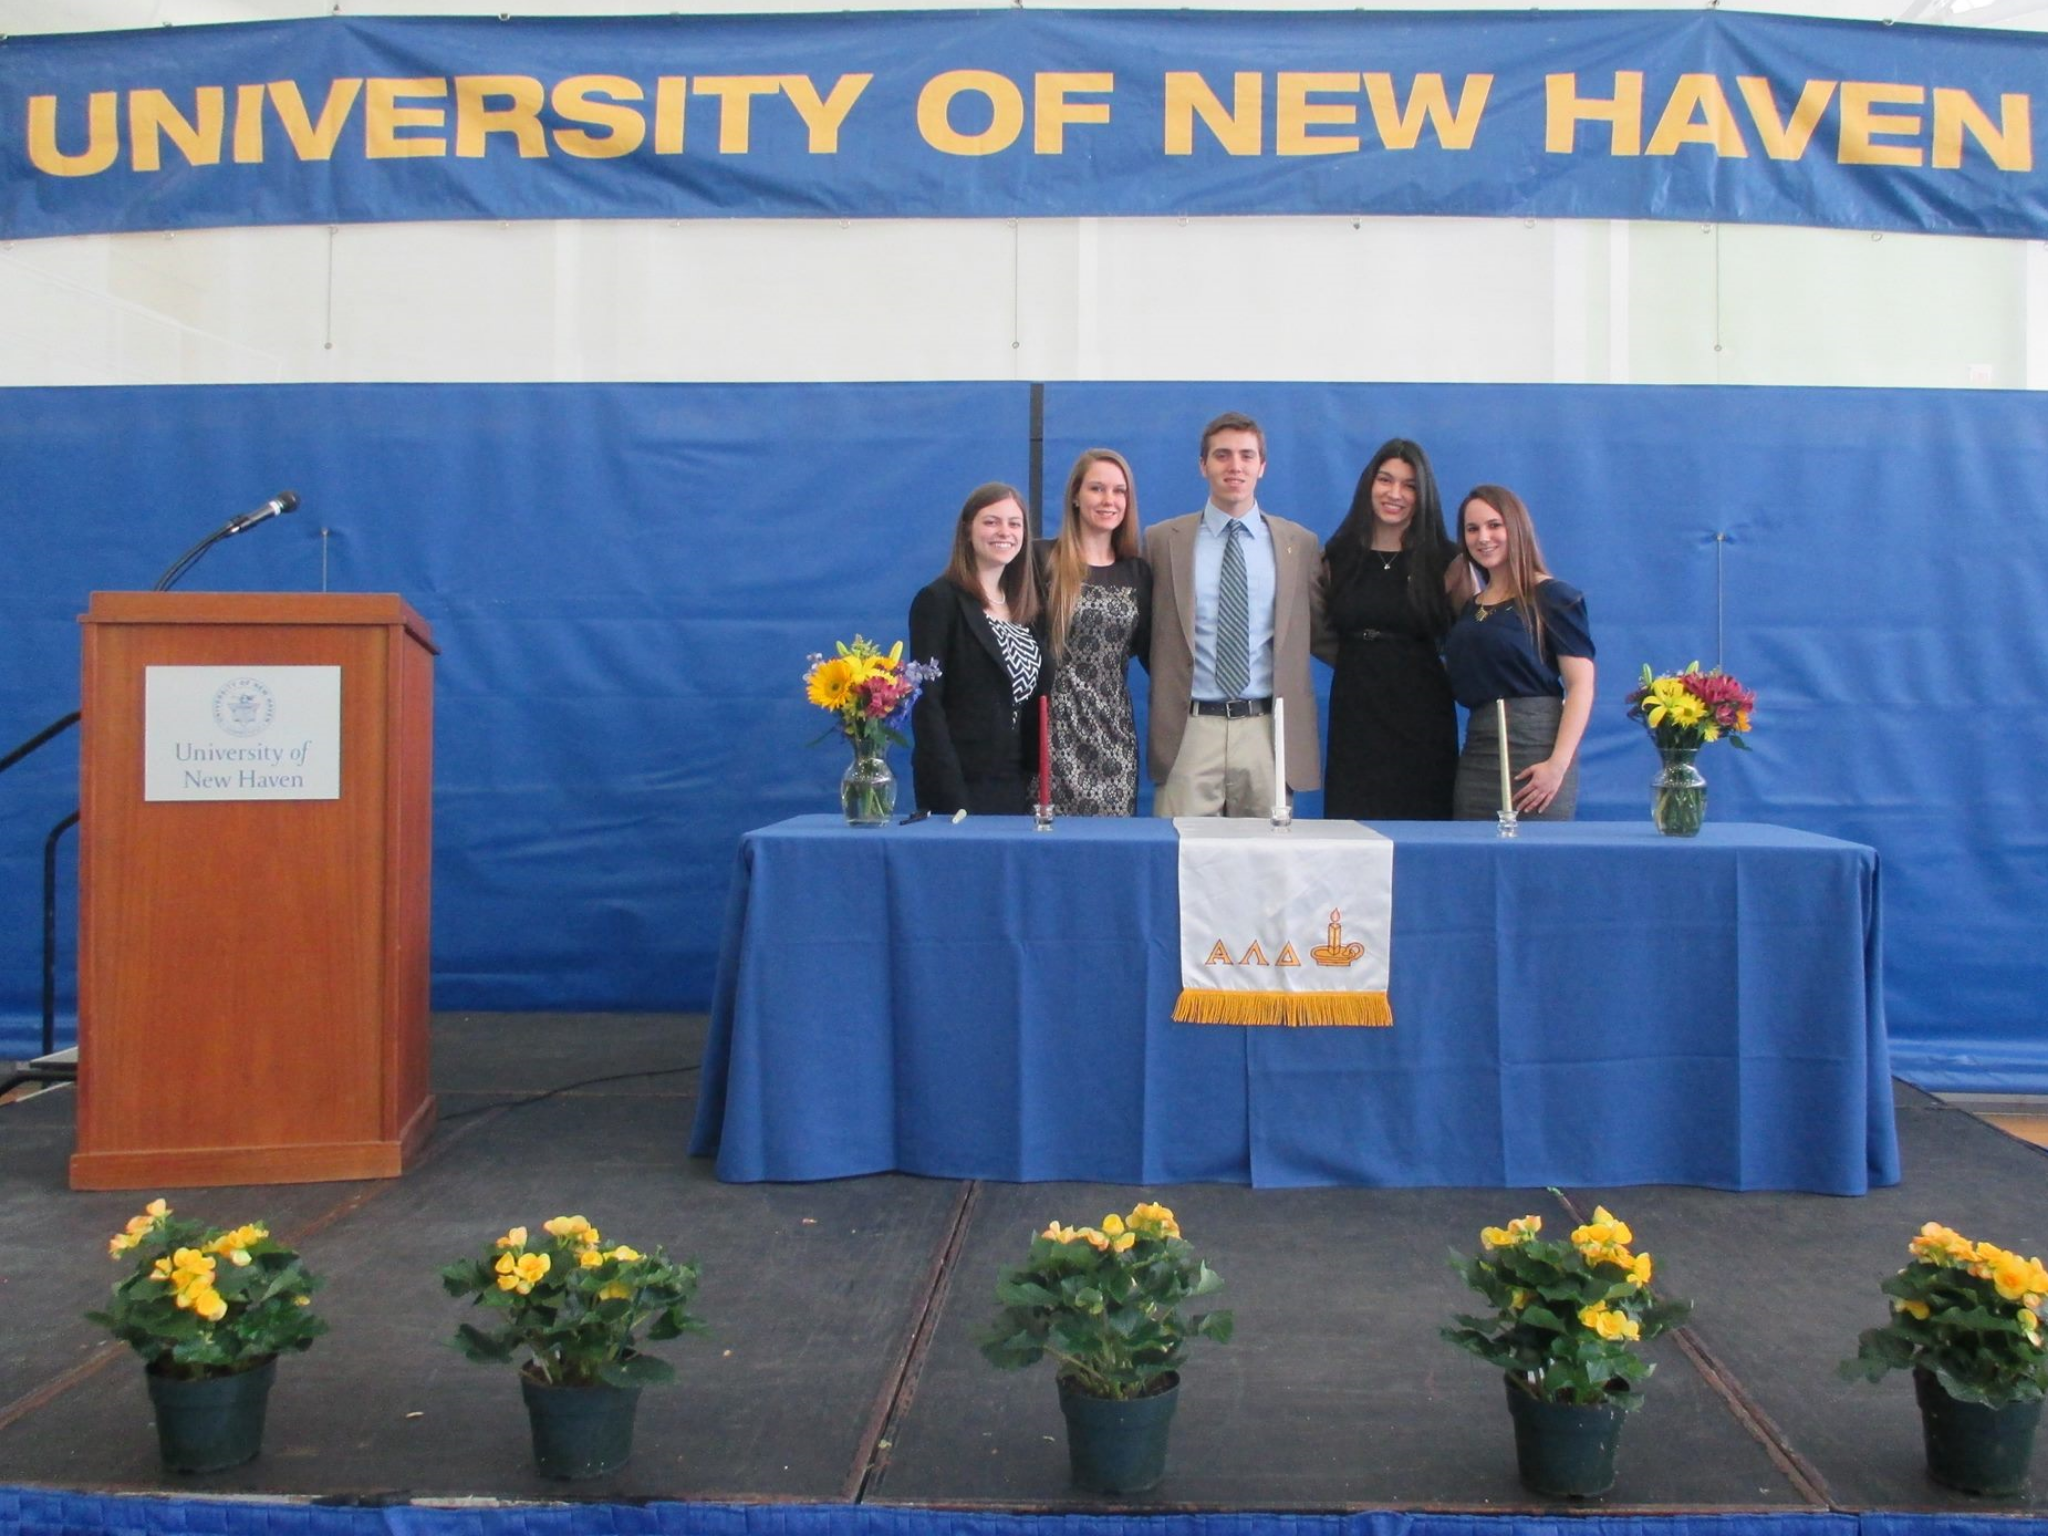 Induction ceremony at the university of new haven